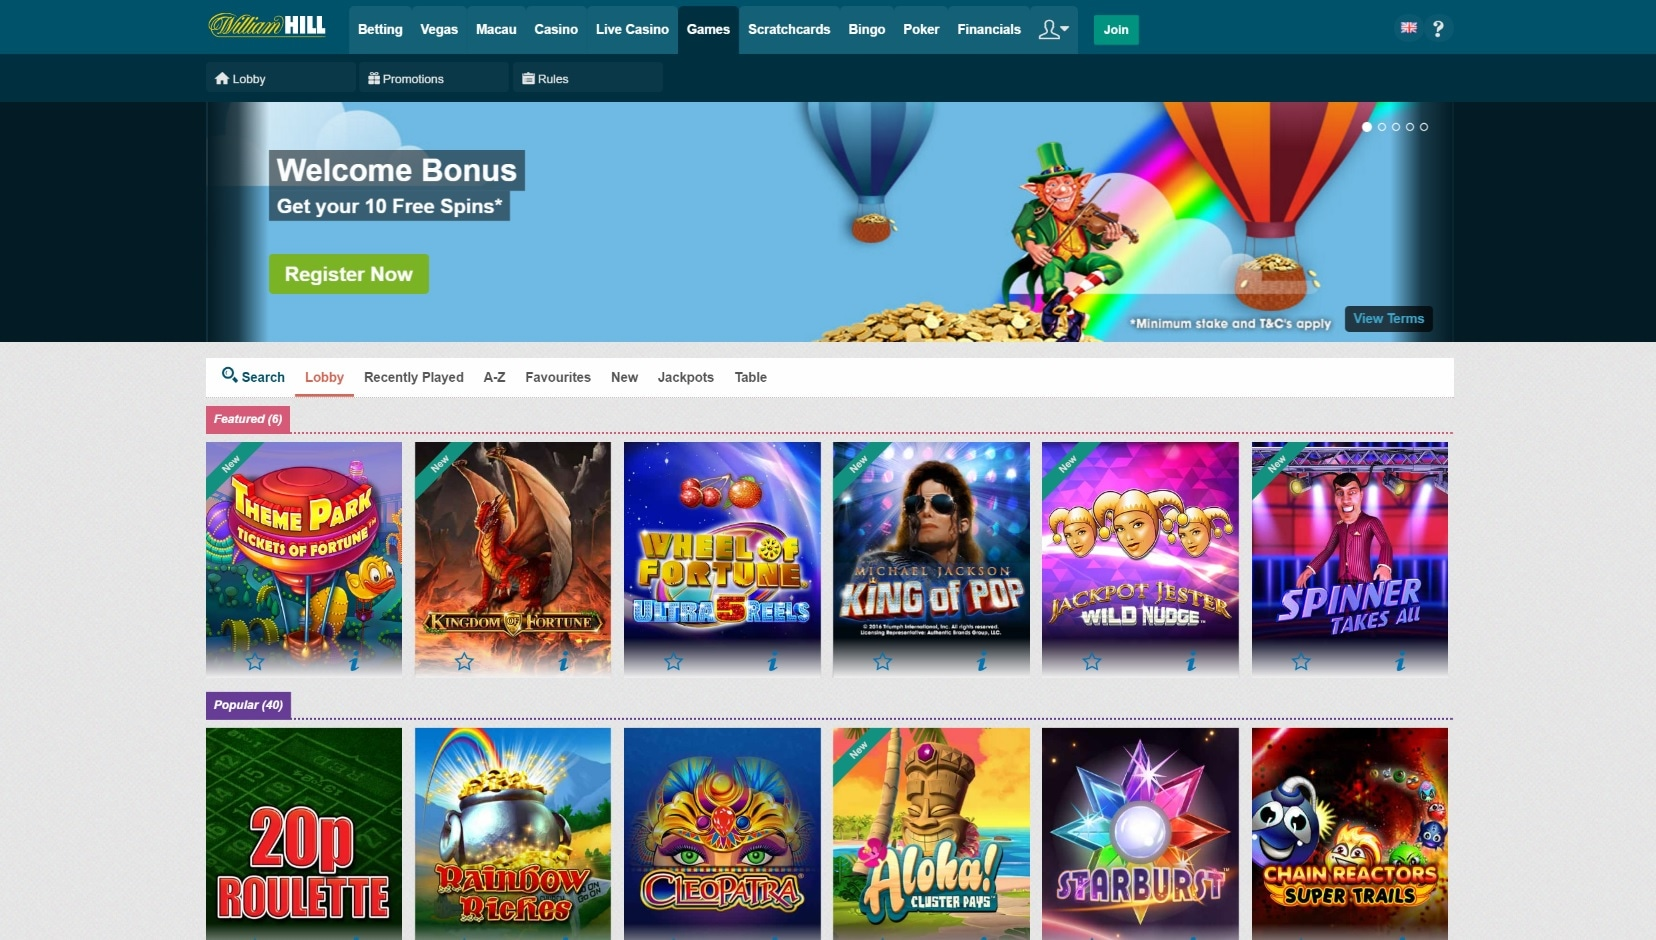 The Best PayPal Casino Bonus Offers in 2019